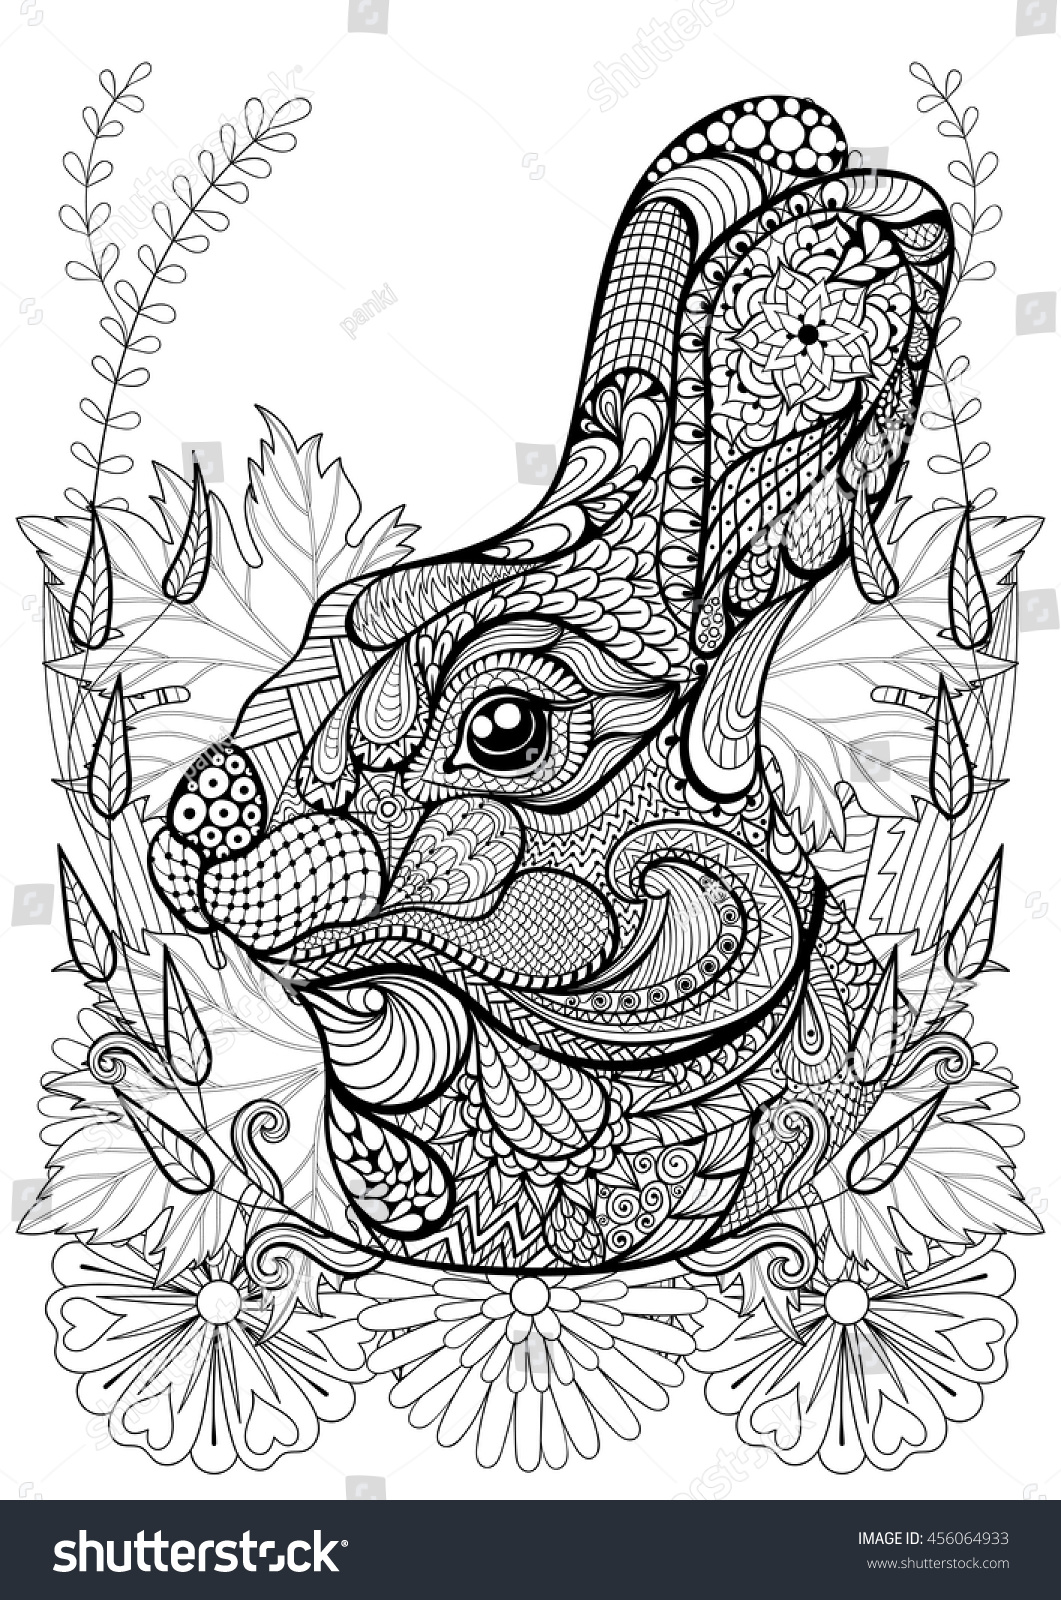 zentangle stylized rabbit with flowers hand drawn ethnic animal for adult coloring pages art